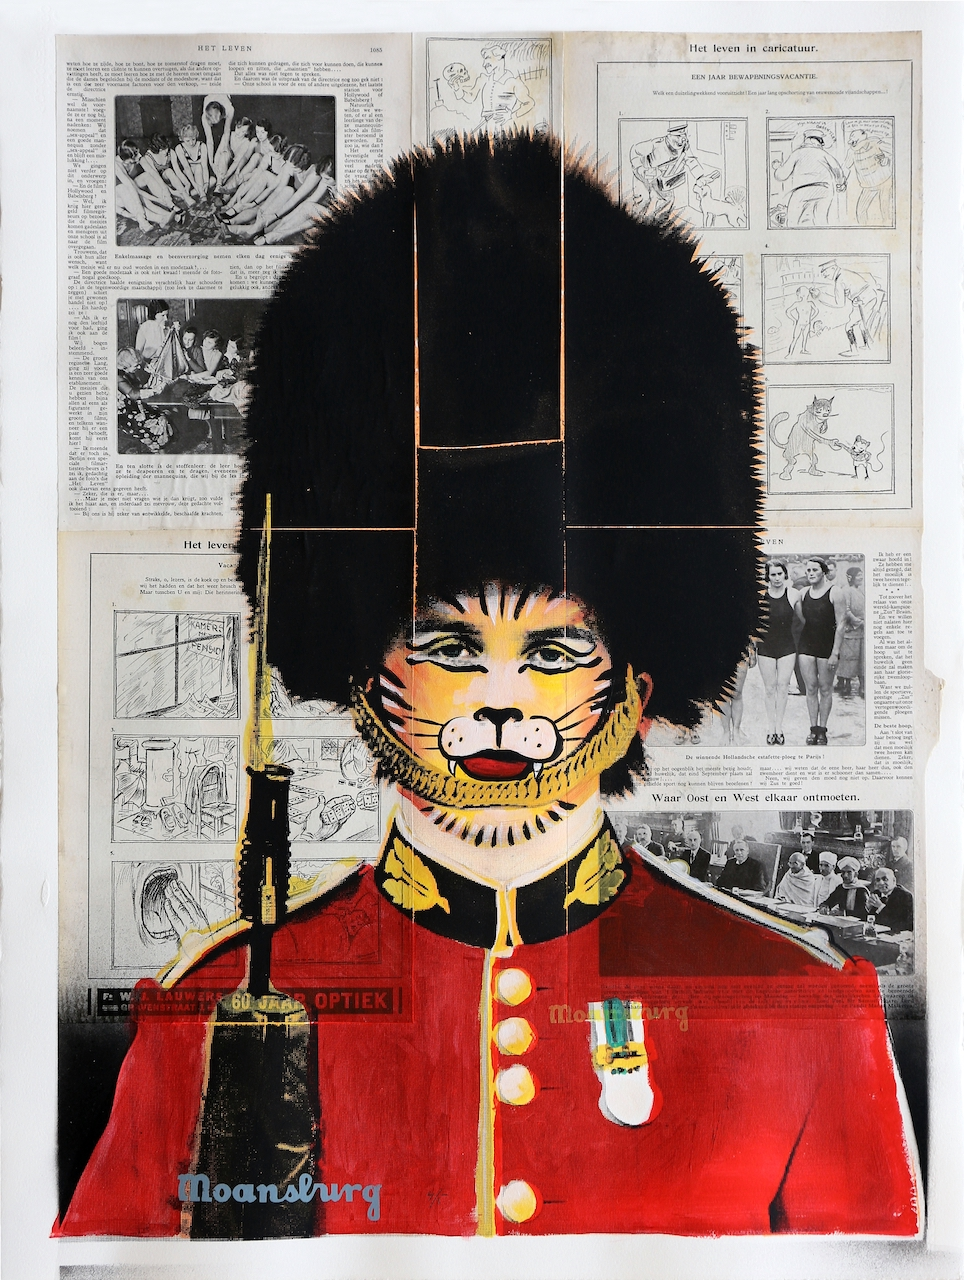 Crail Moansburg - Changing The Guard (Tiger Face).jpg